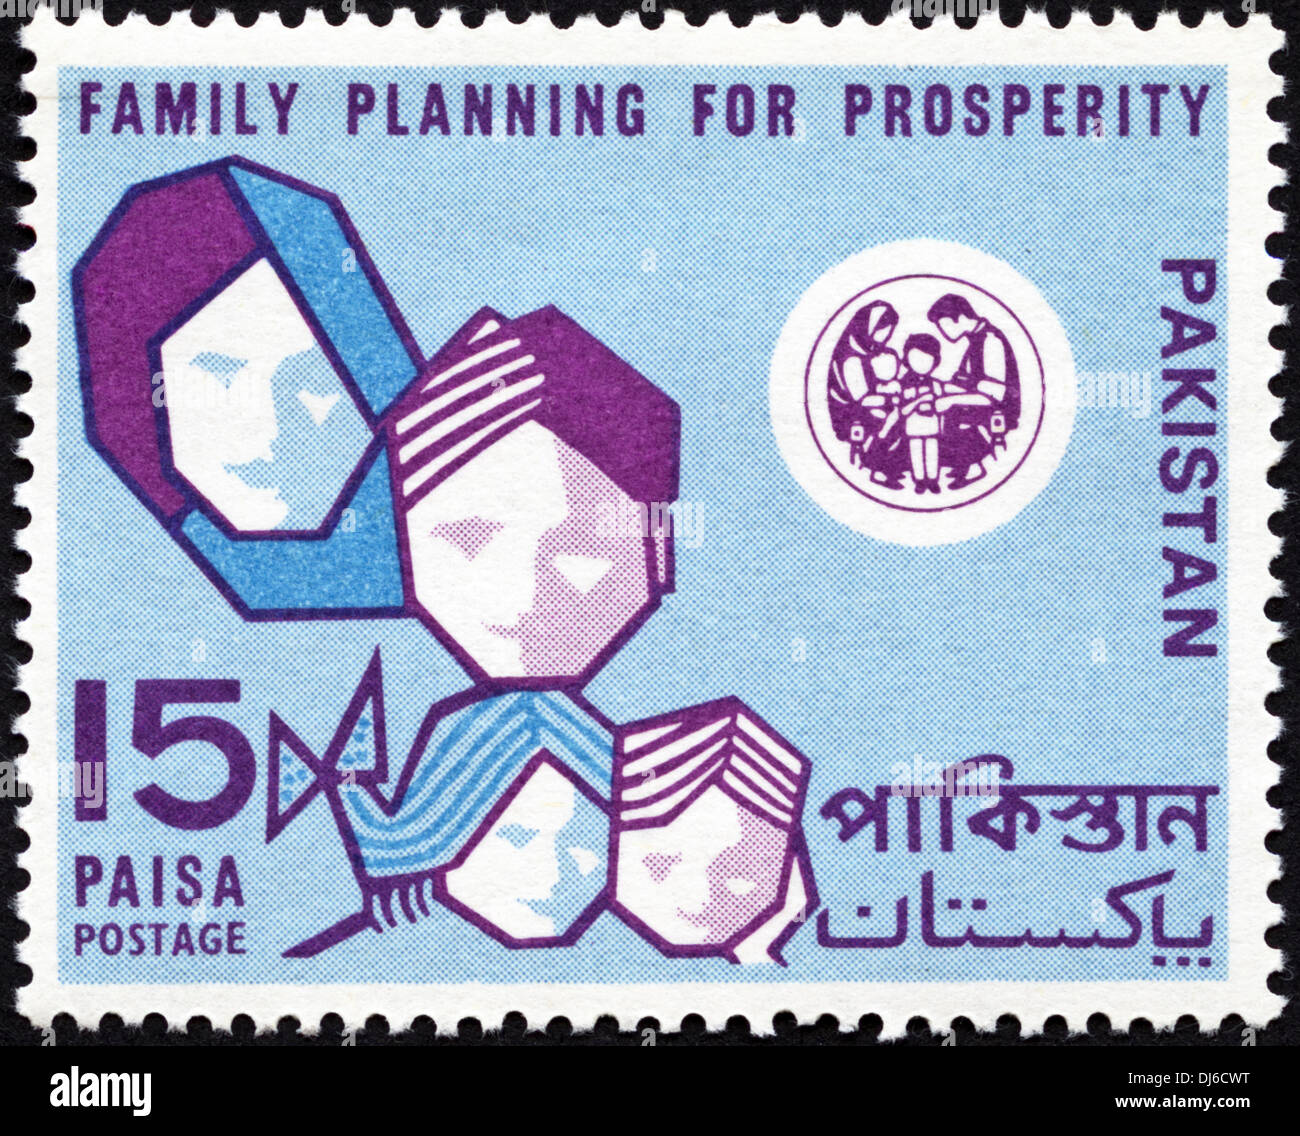 postage stamp Pakistan 15 Paisa featuring Family Planning for Prosperity circa 1969 - Stock Image